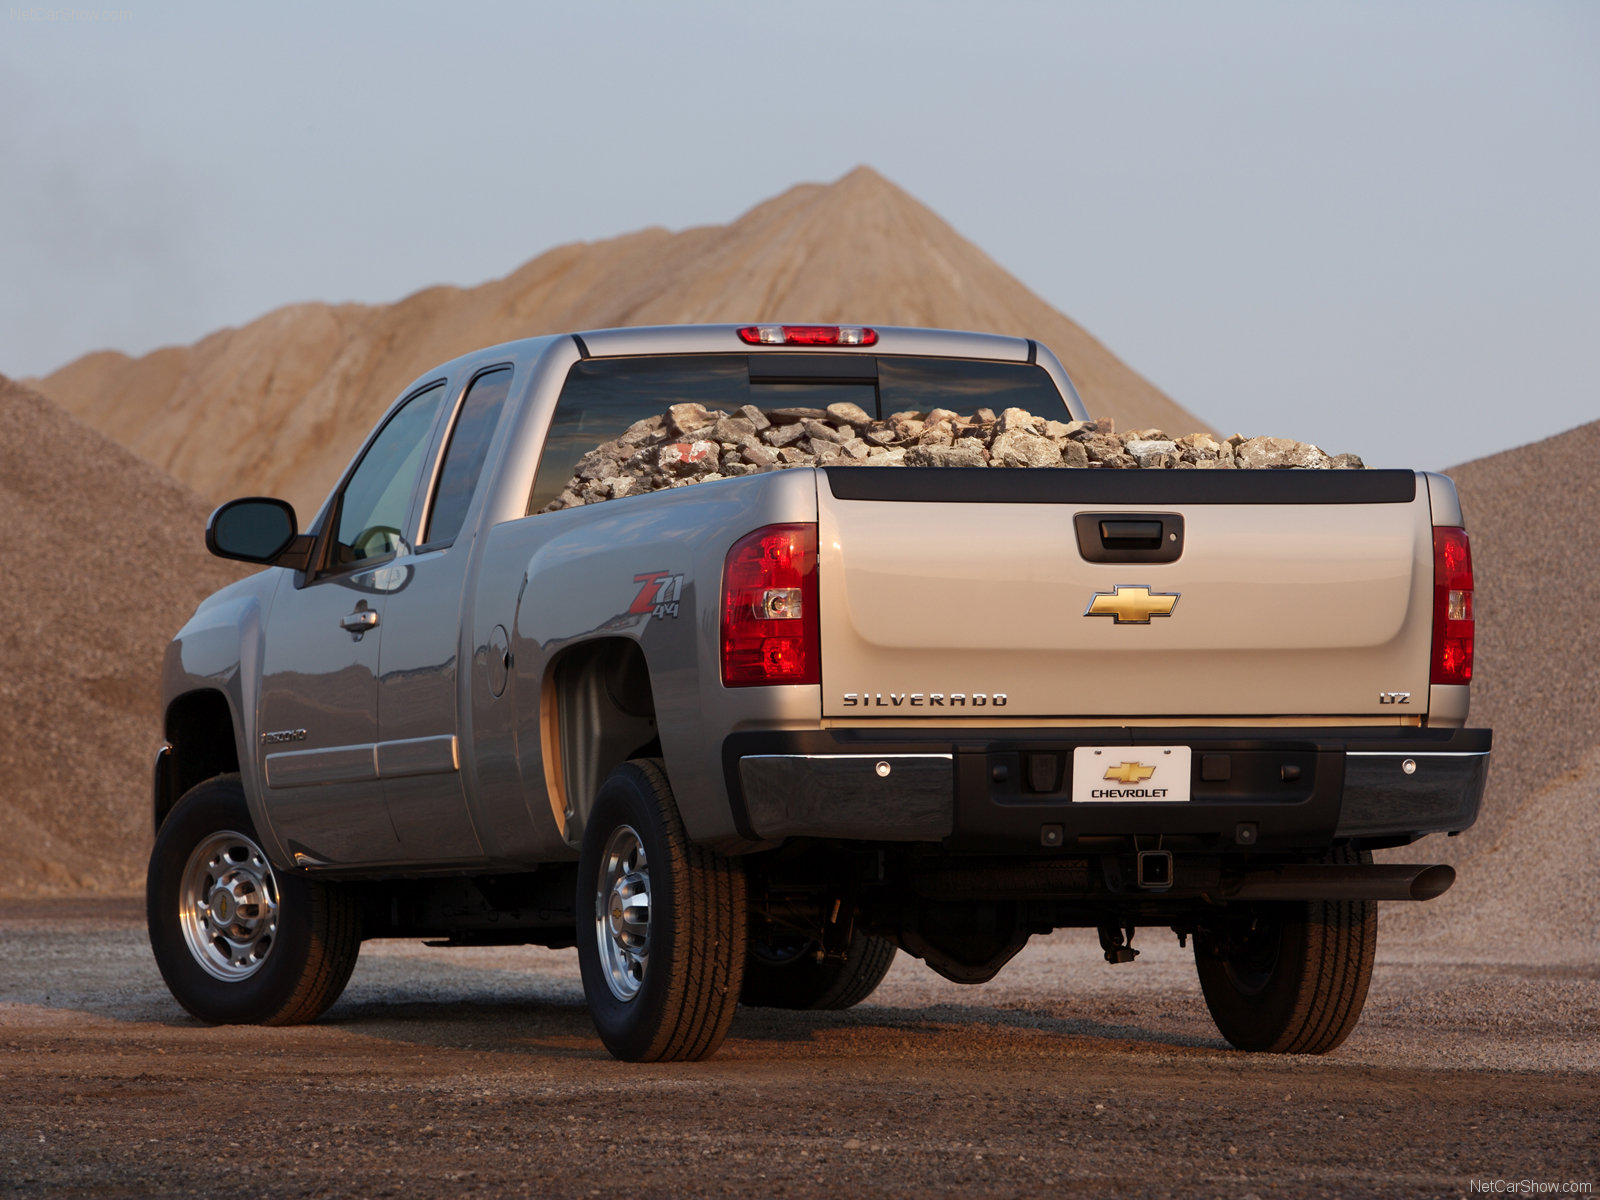 Chevrolet Silverado Extended Cab photo 41379